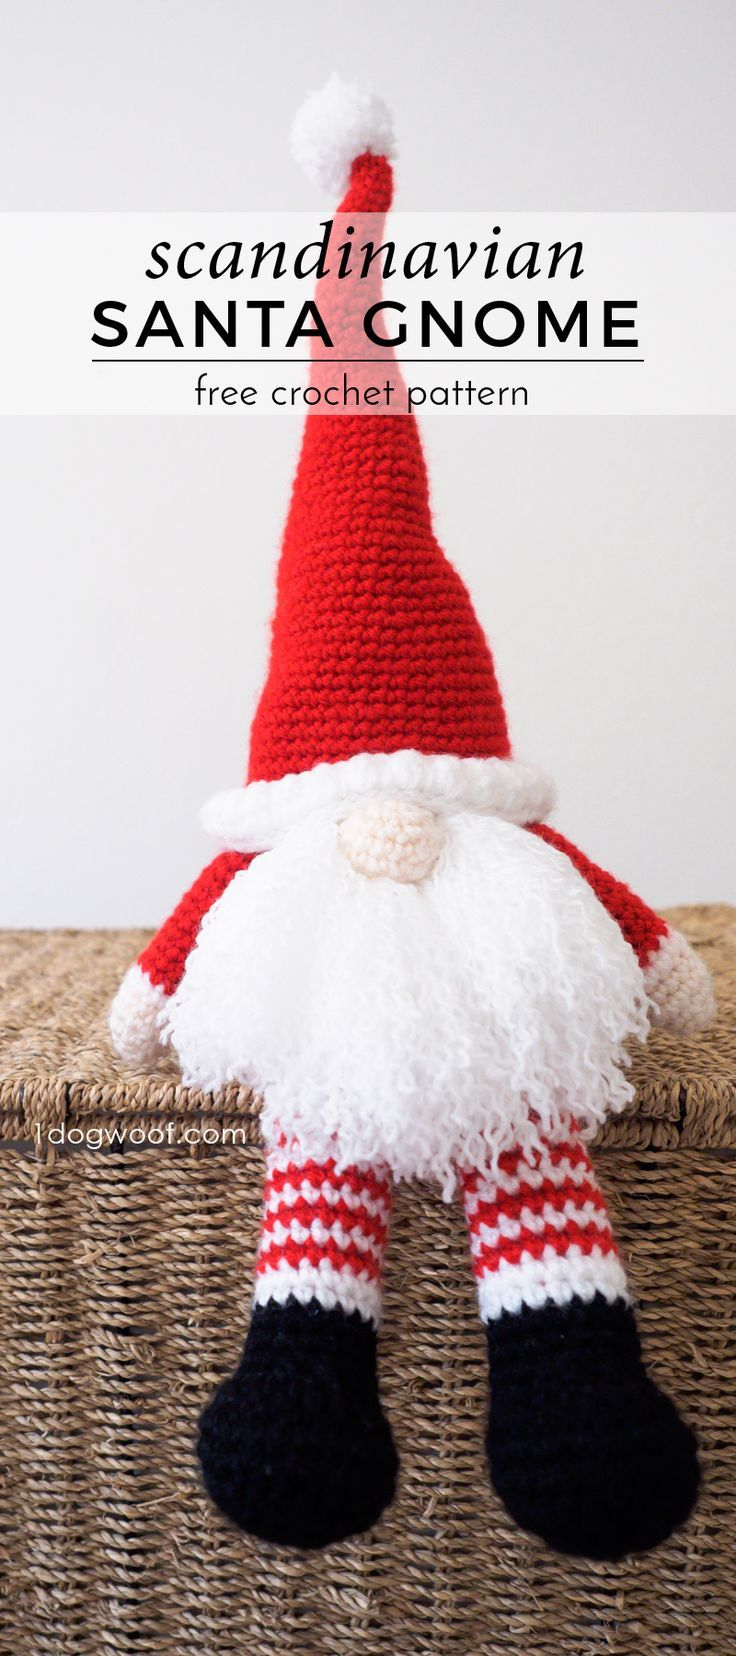 Scandinavian Santa Gnome free crochet pattern. Makes a perfect handmade gift for Christmas! www.1dogwoof.com